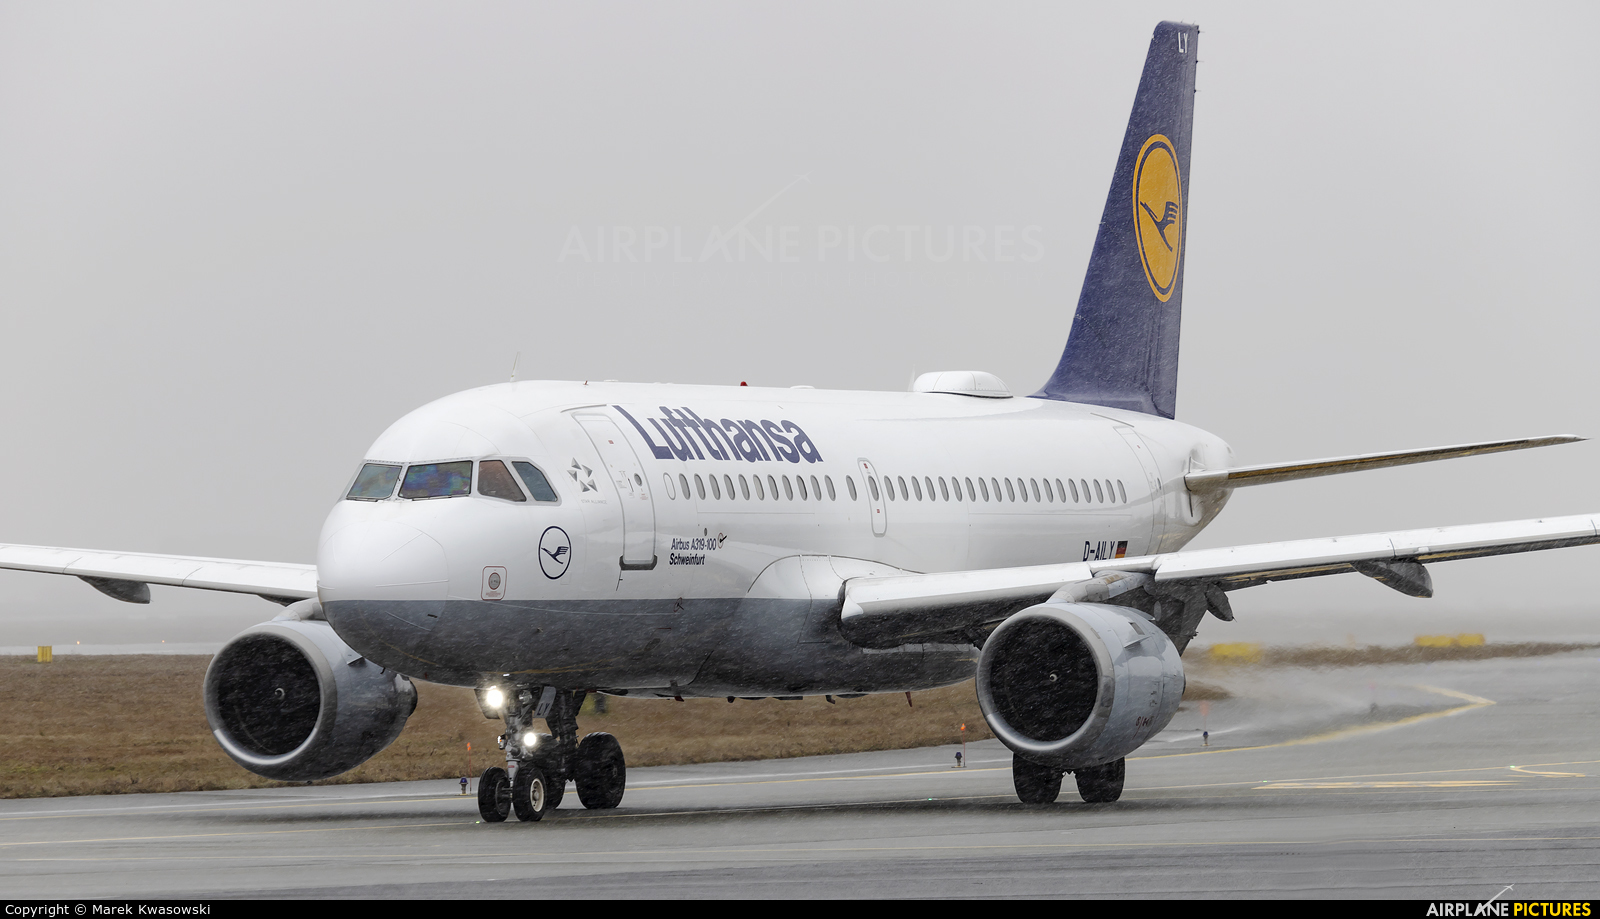 Lufthansa D-AILY aircraft at Warsaw - Frederic Chopin